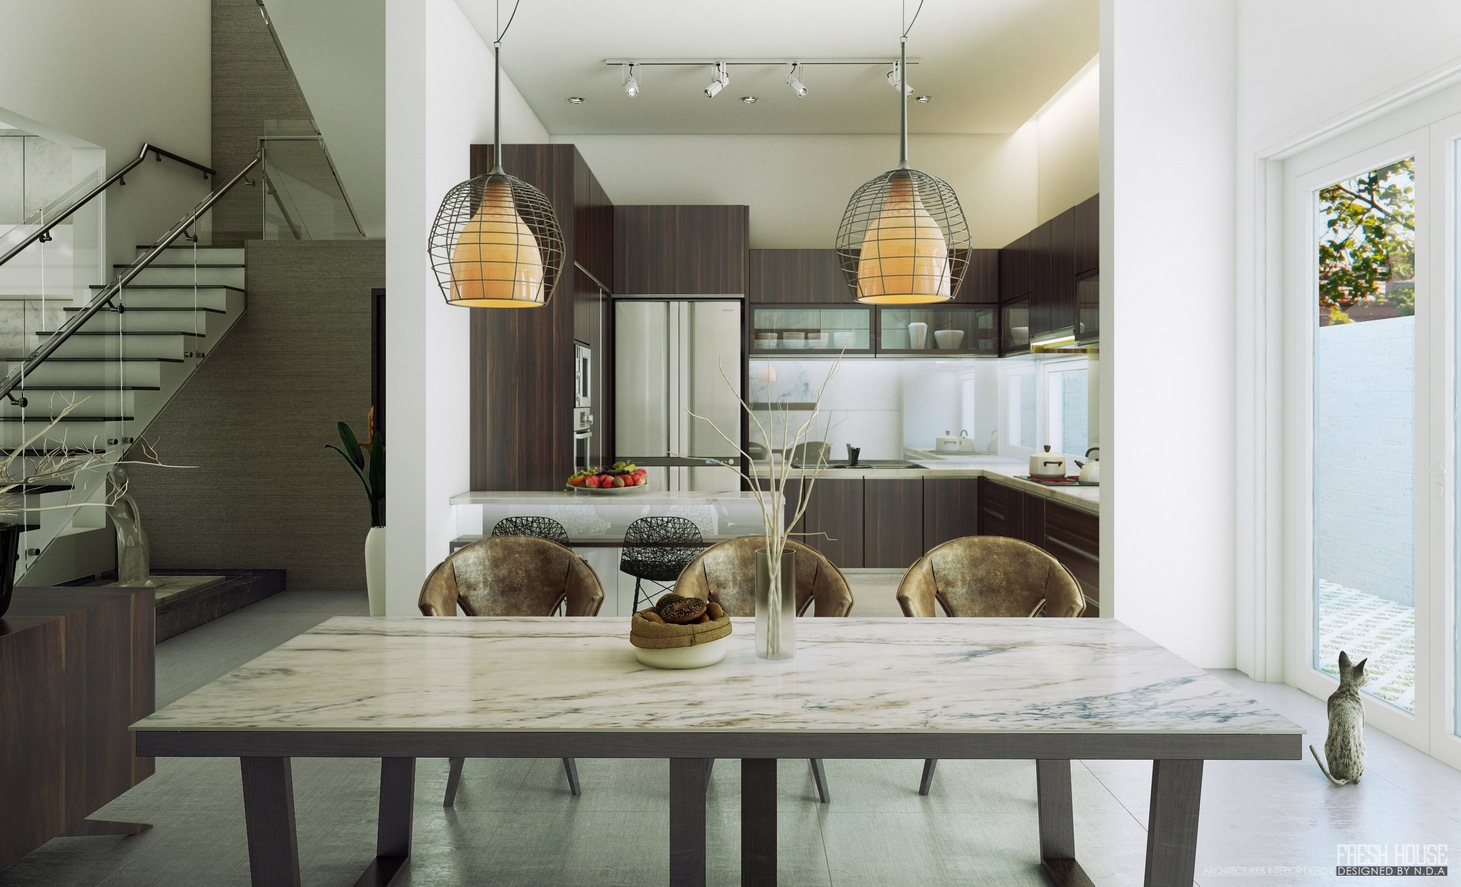 5 Reasons To Love Marble In Your Home